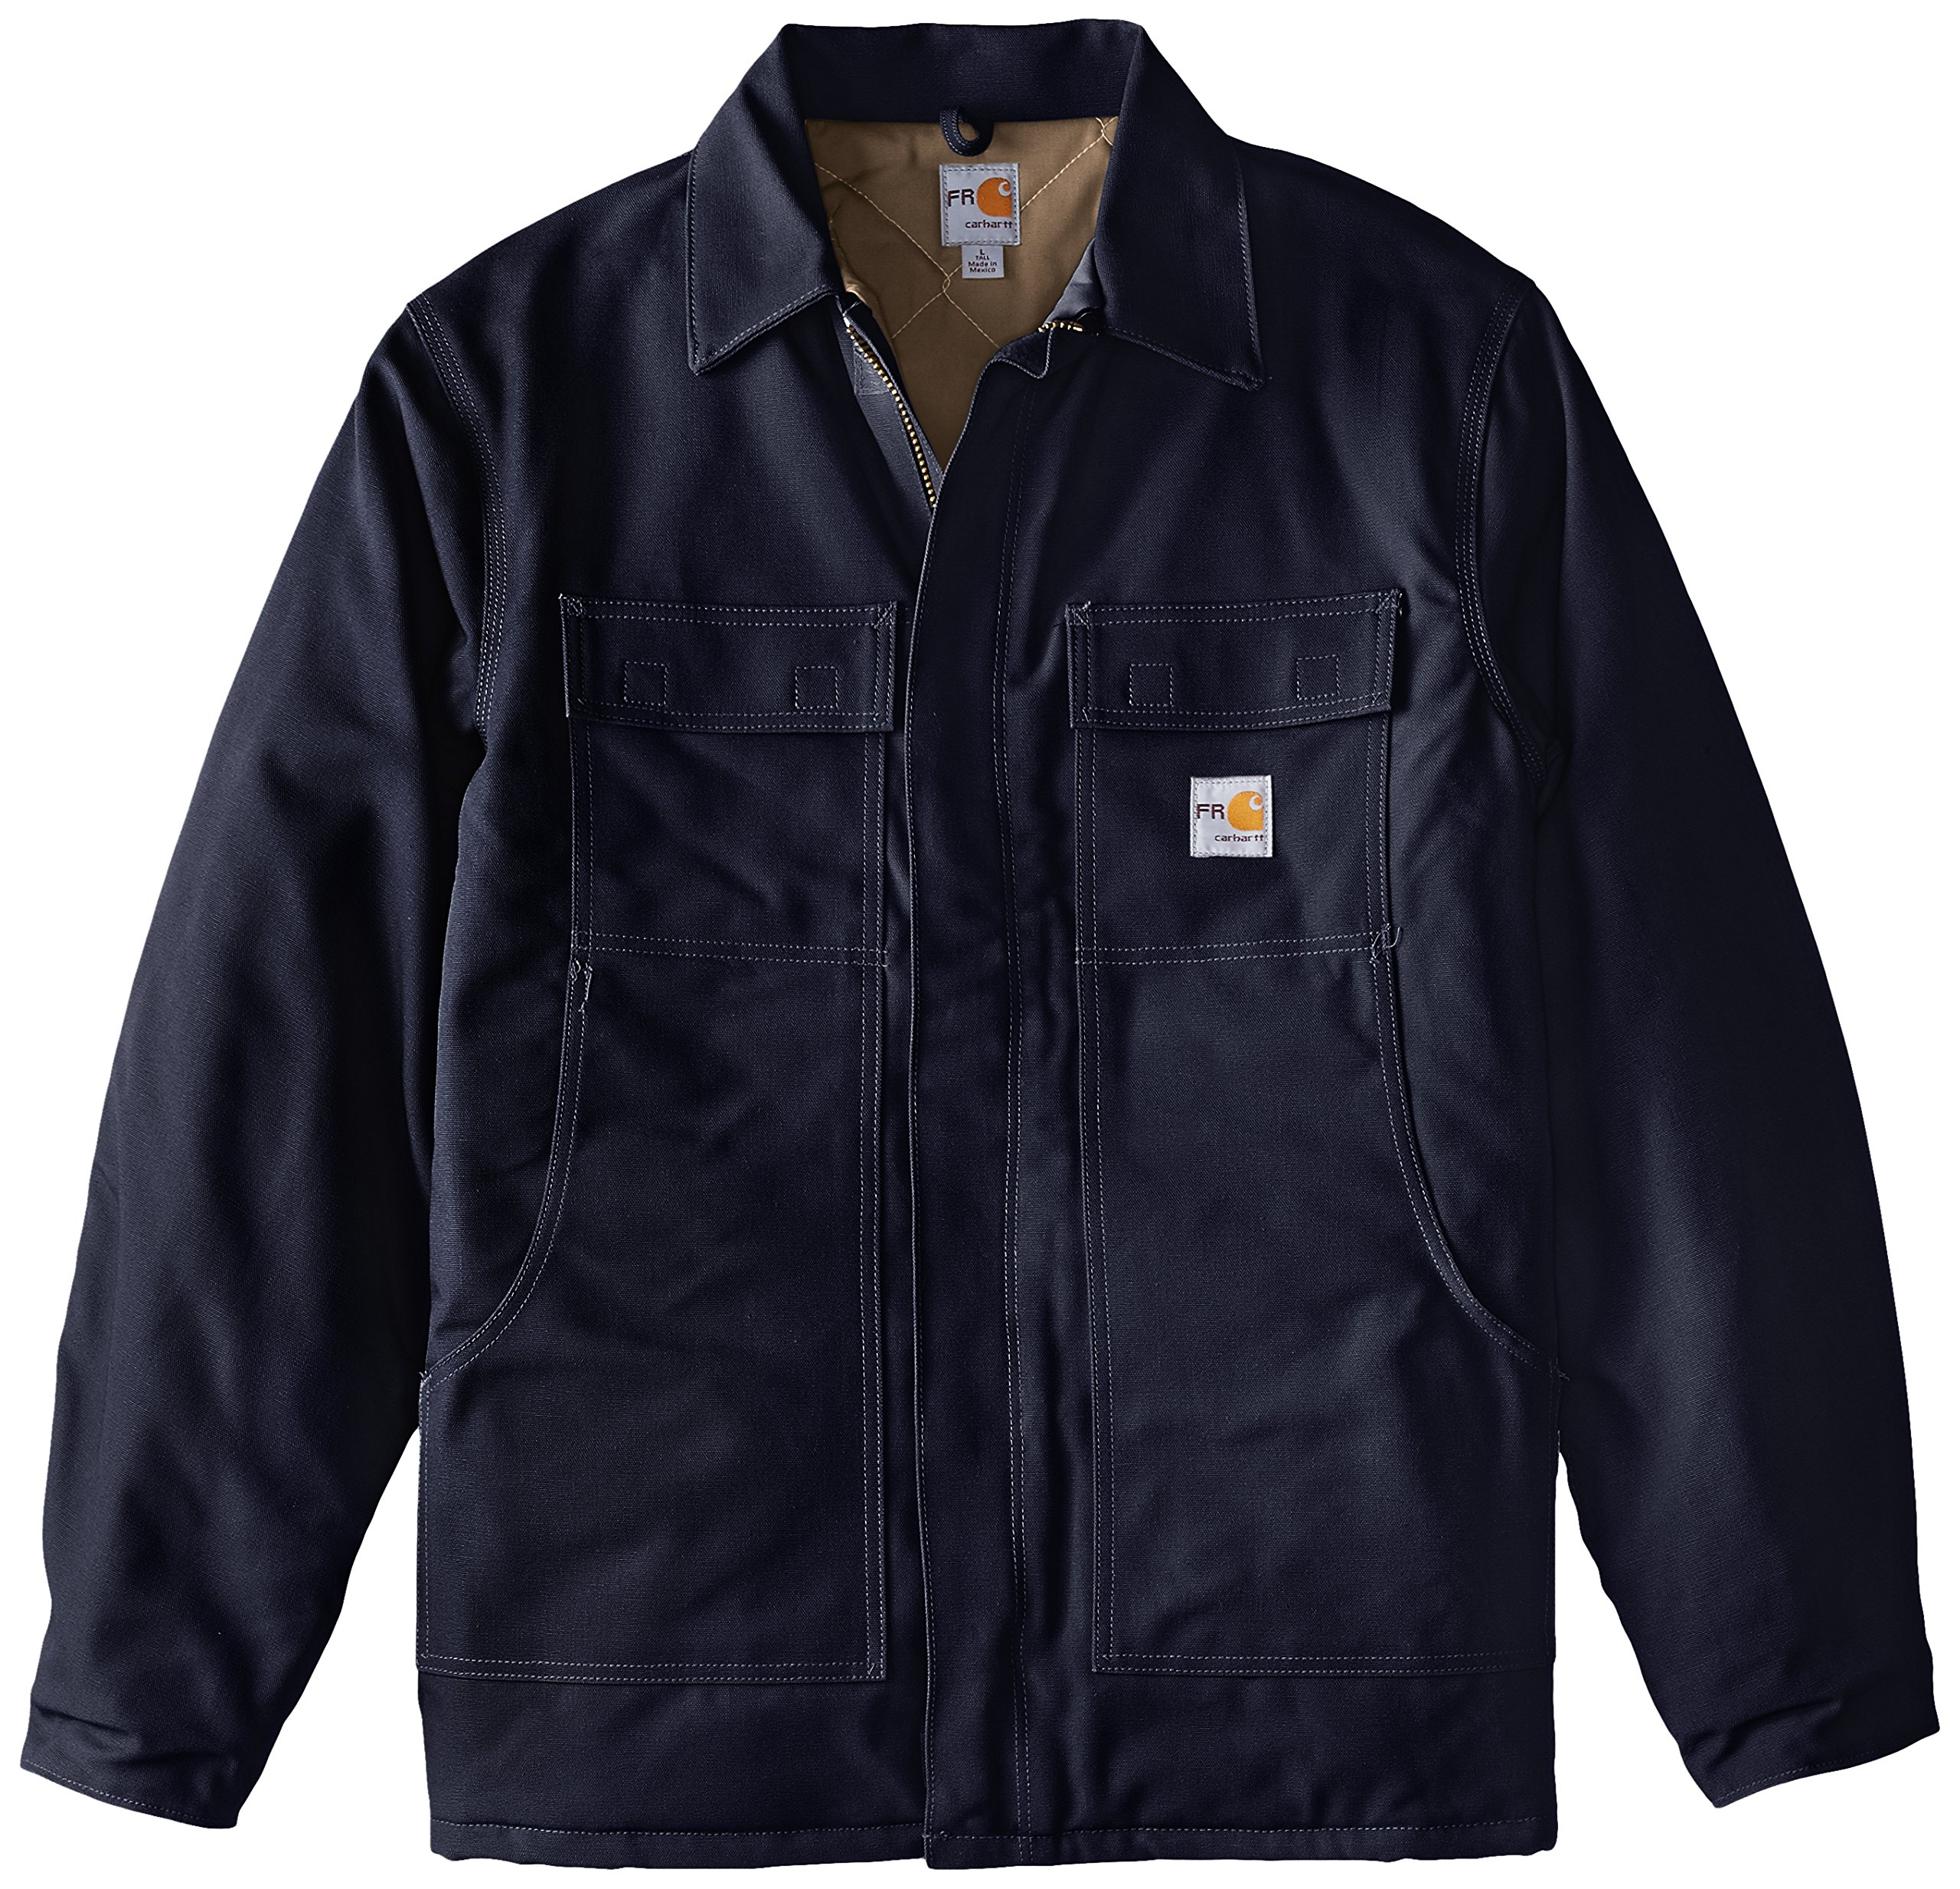 Carhartt Men's Big-Tall Flame Resistant Duck Traditional Coat, Dark Navy, X-Large/Tall by Carhartt (Image #1)